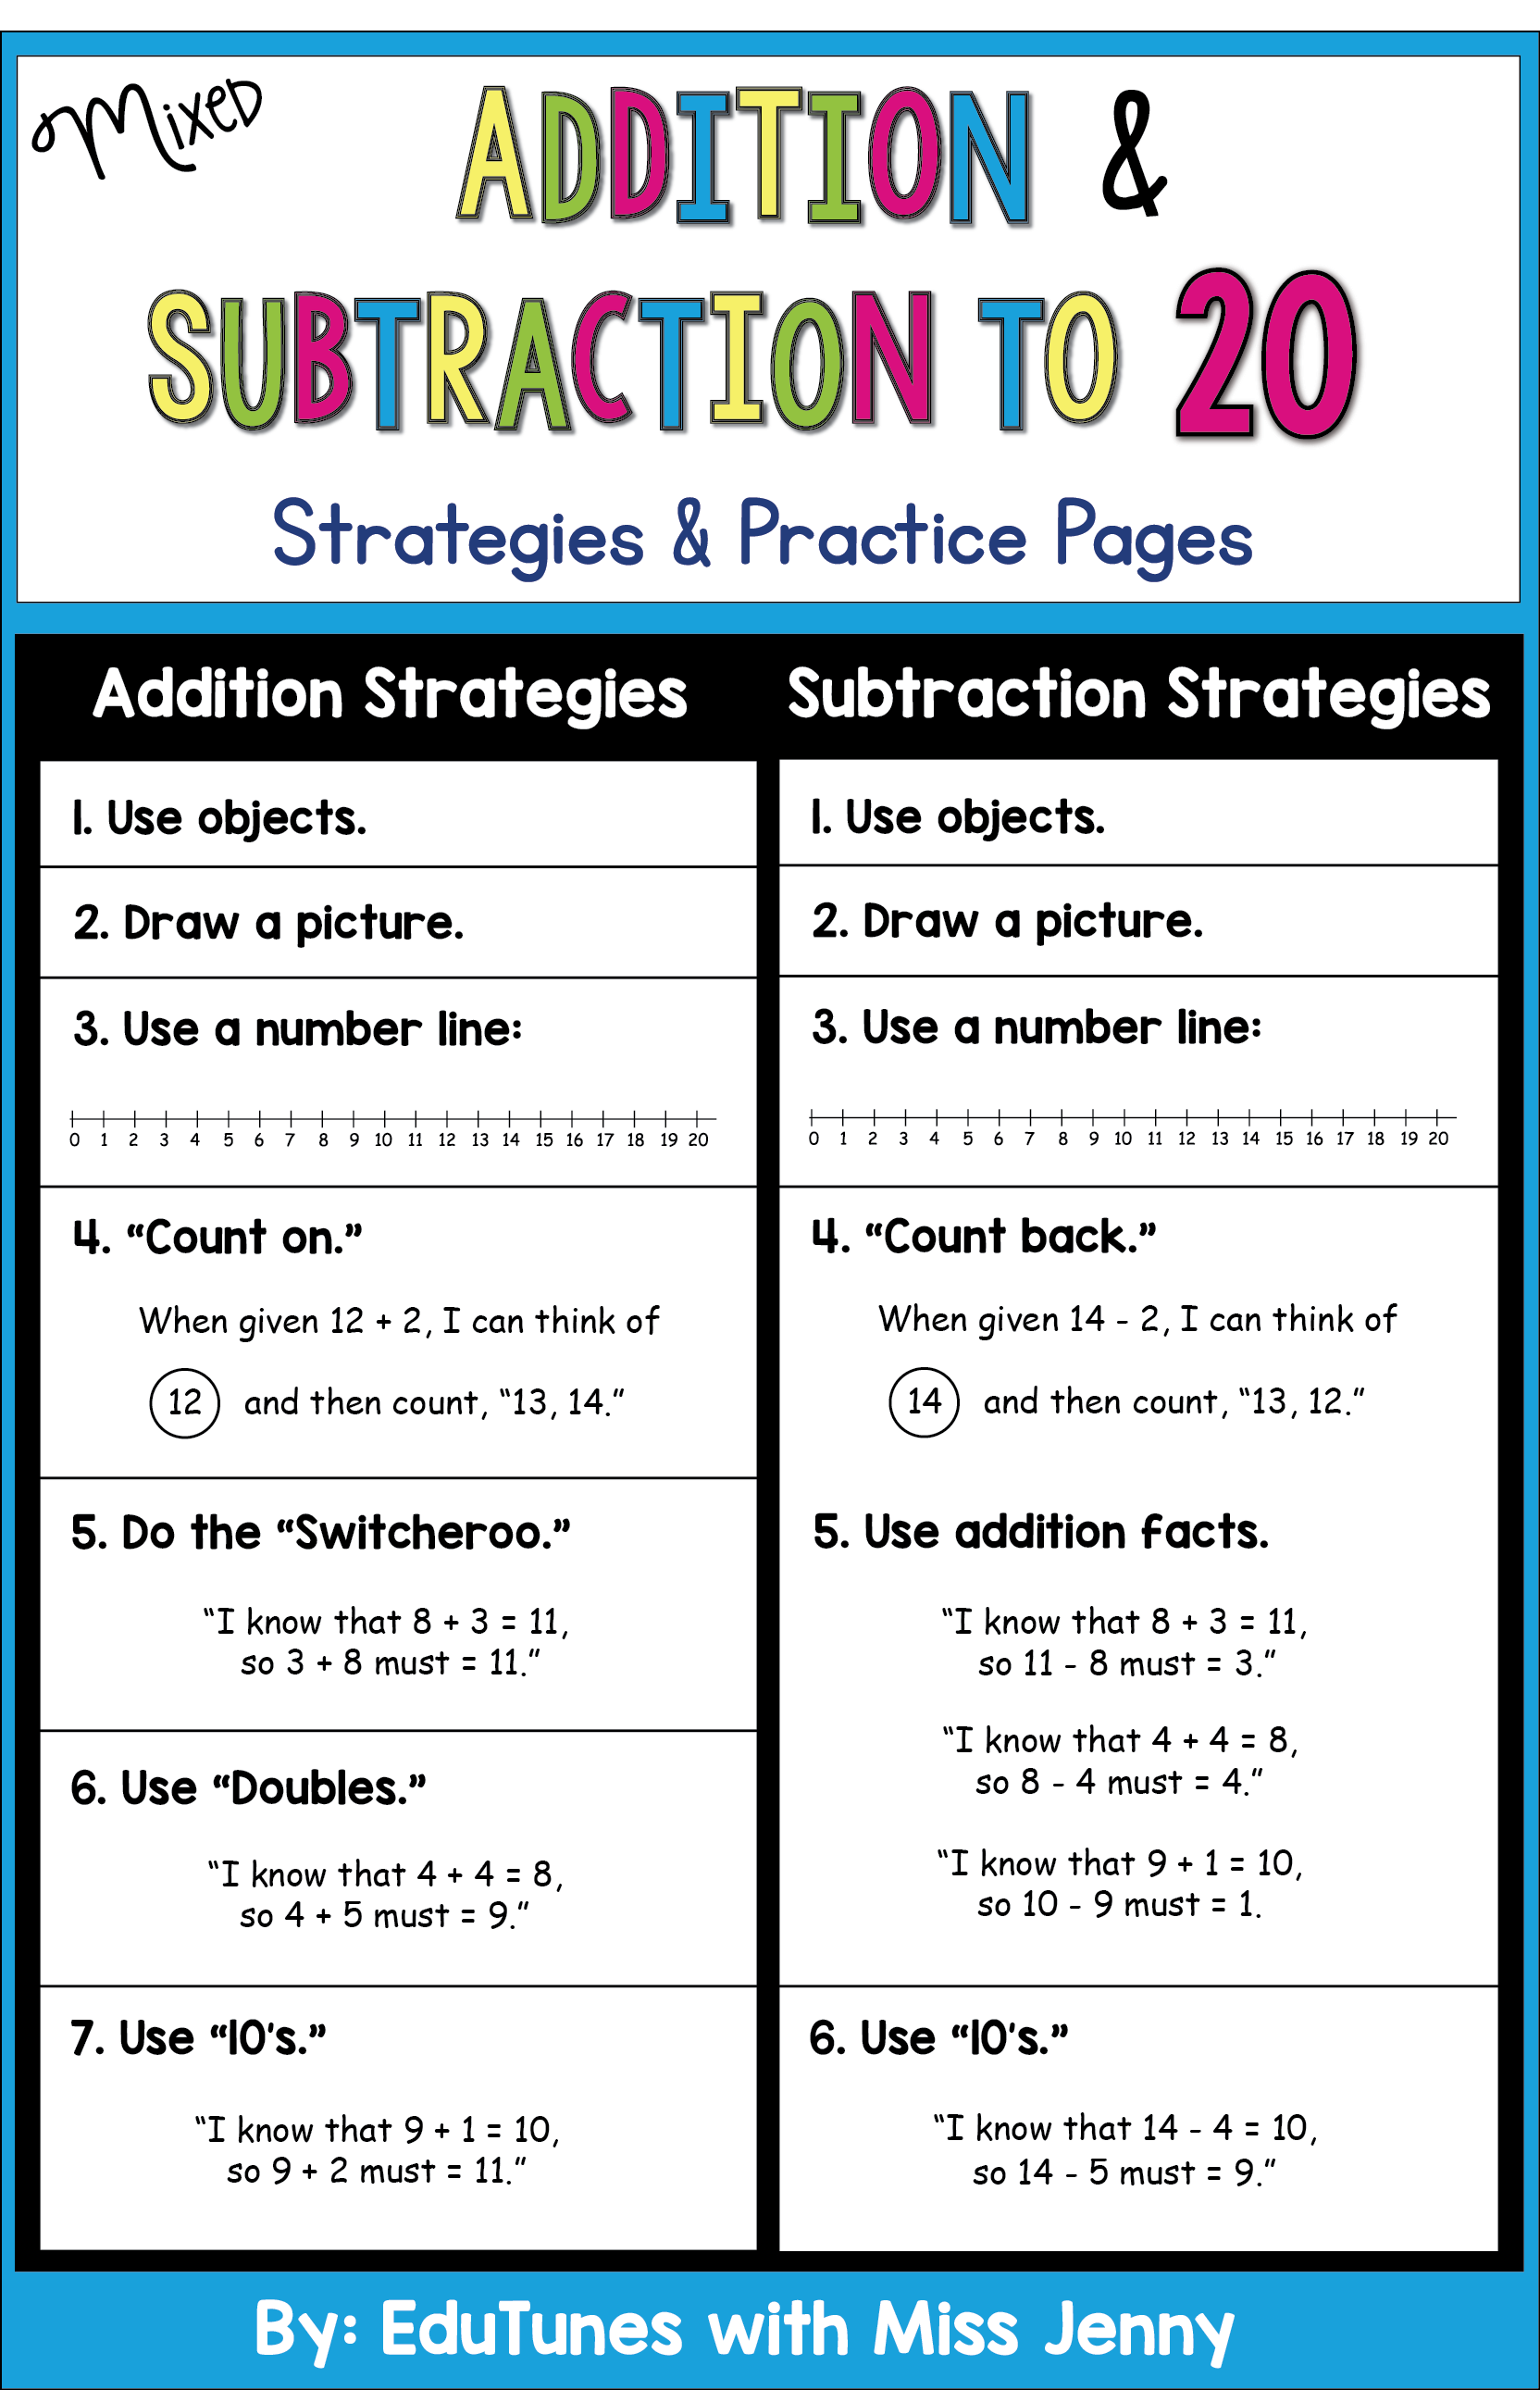 Mixed Addition And Subtraction To 20 Practice Pages